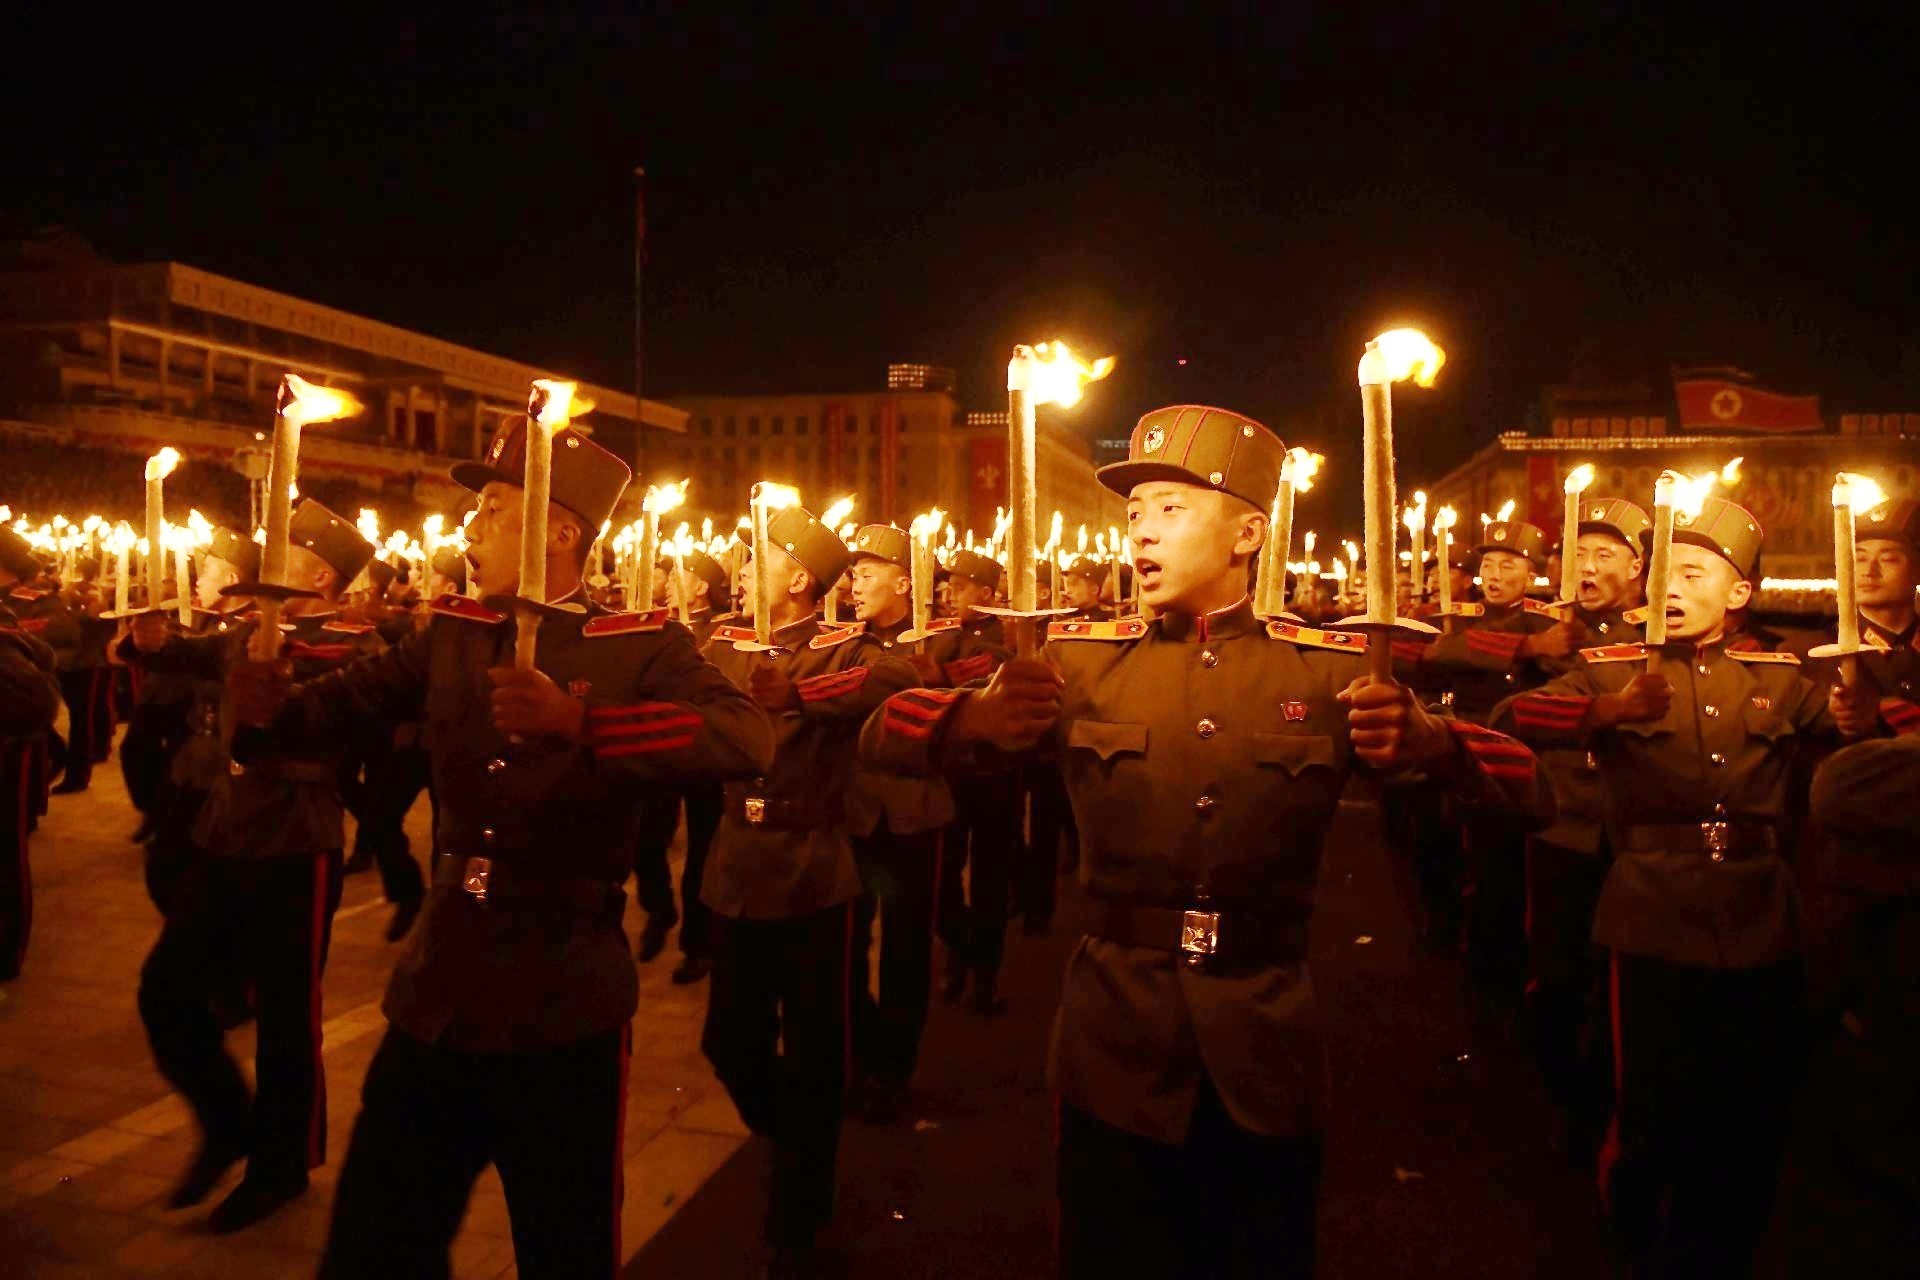 North Koreans prepare for torch march, but no signs of military parade